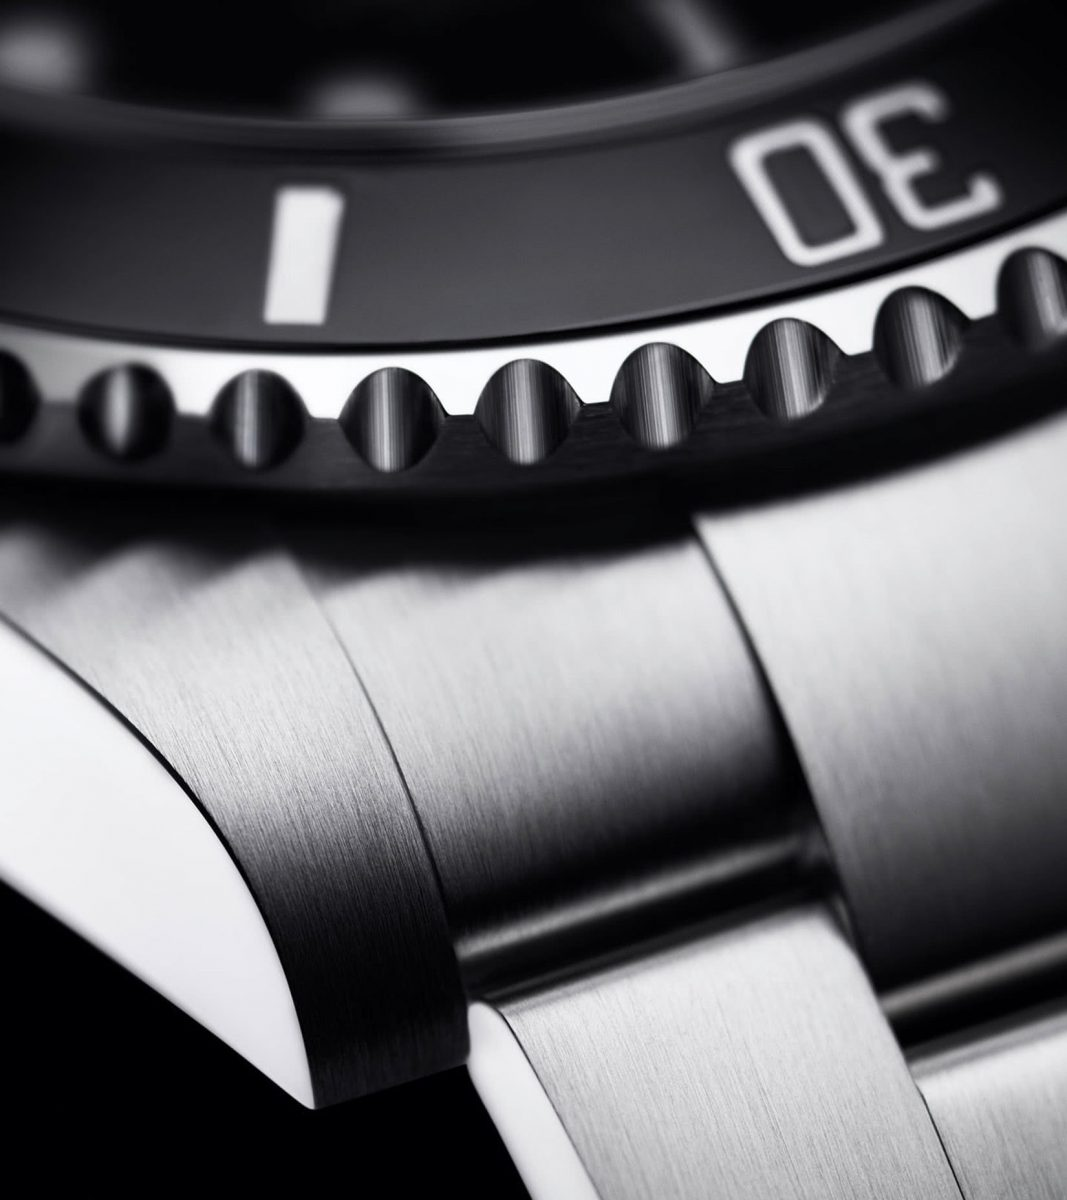 watch materials stainless steel - Luxe Digital